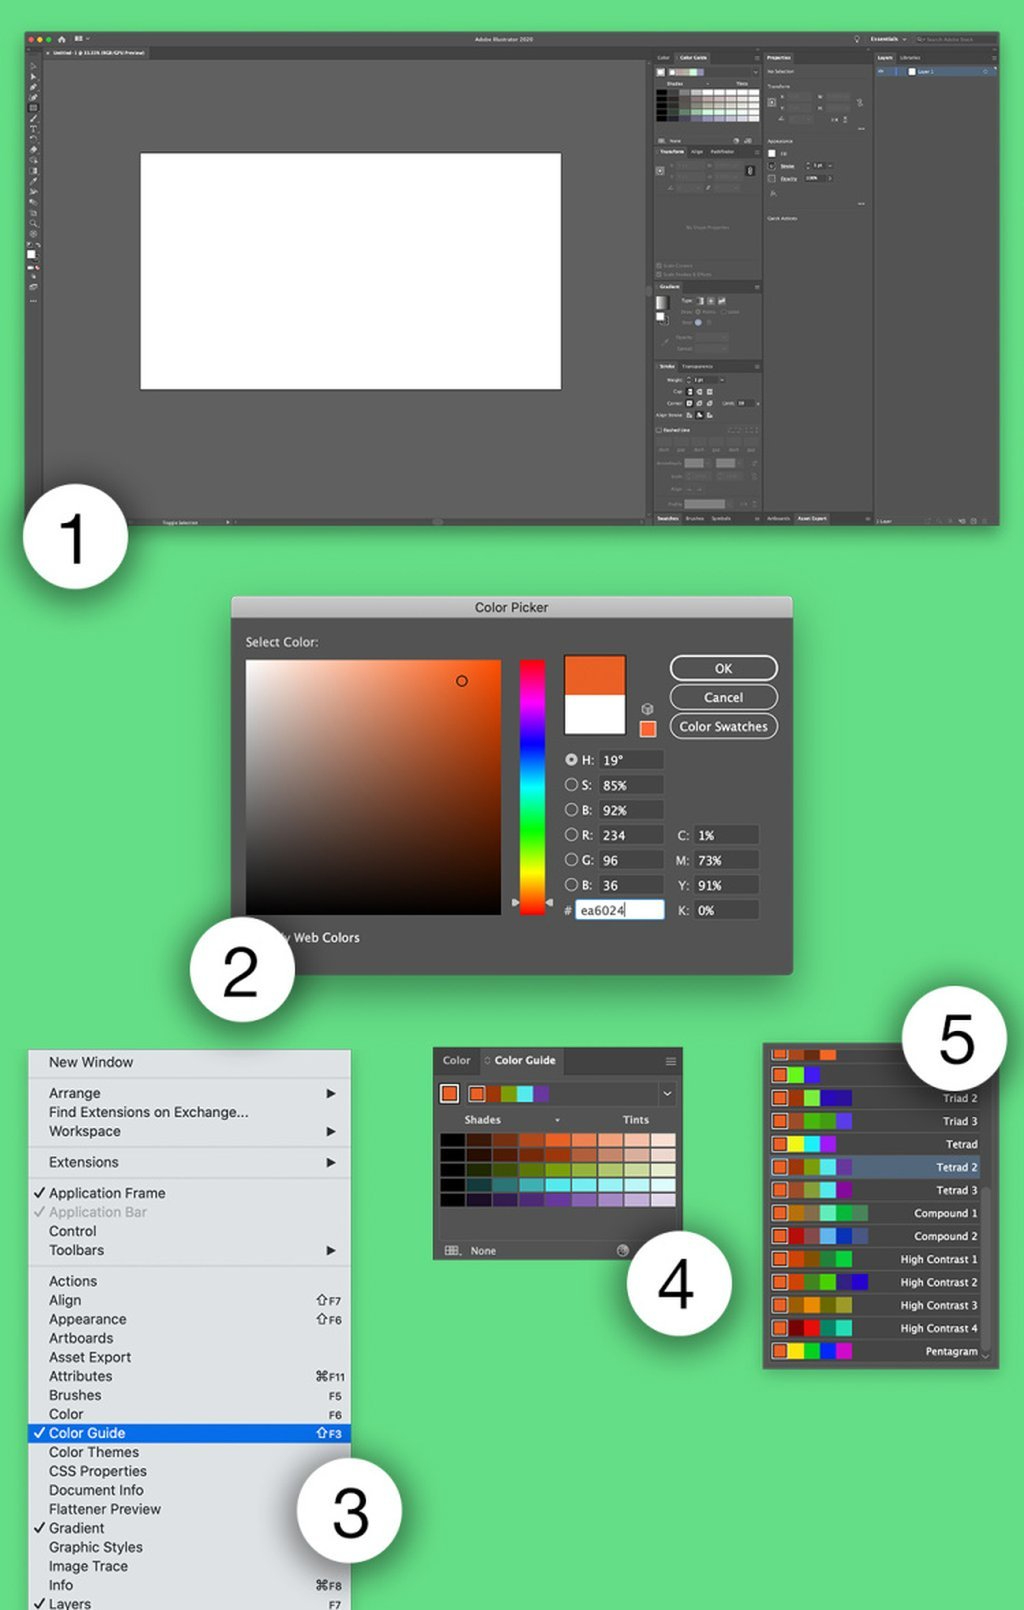 The Color Guide Panel